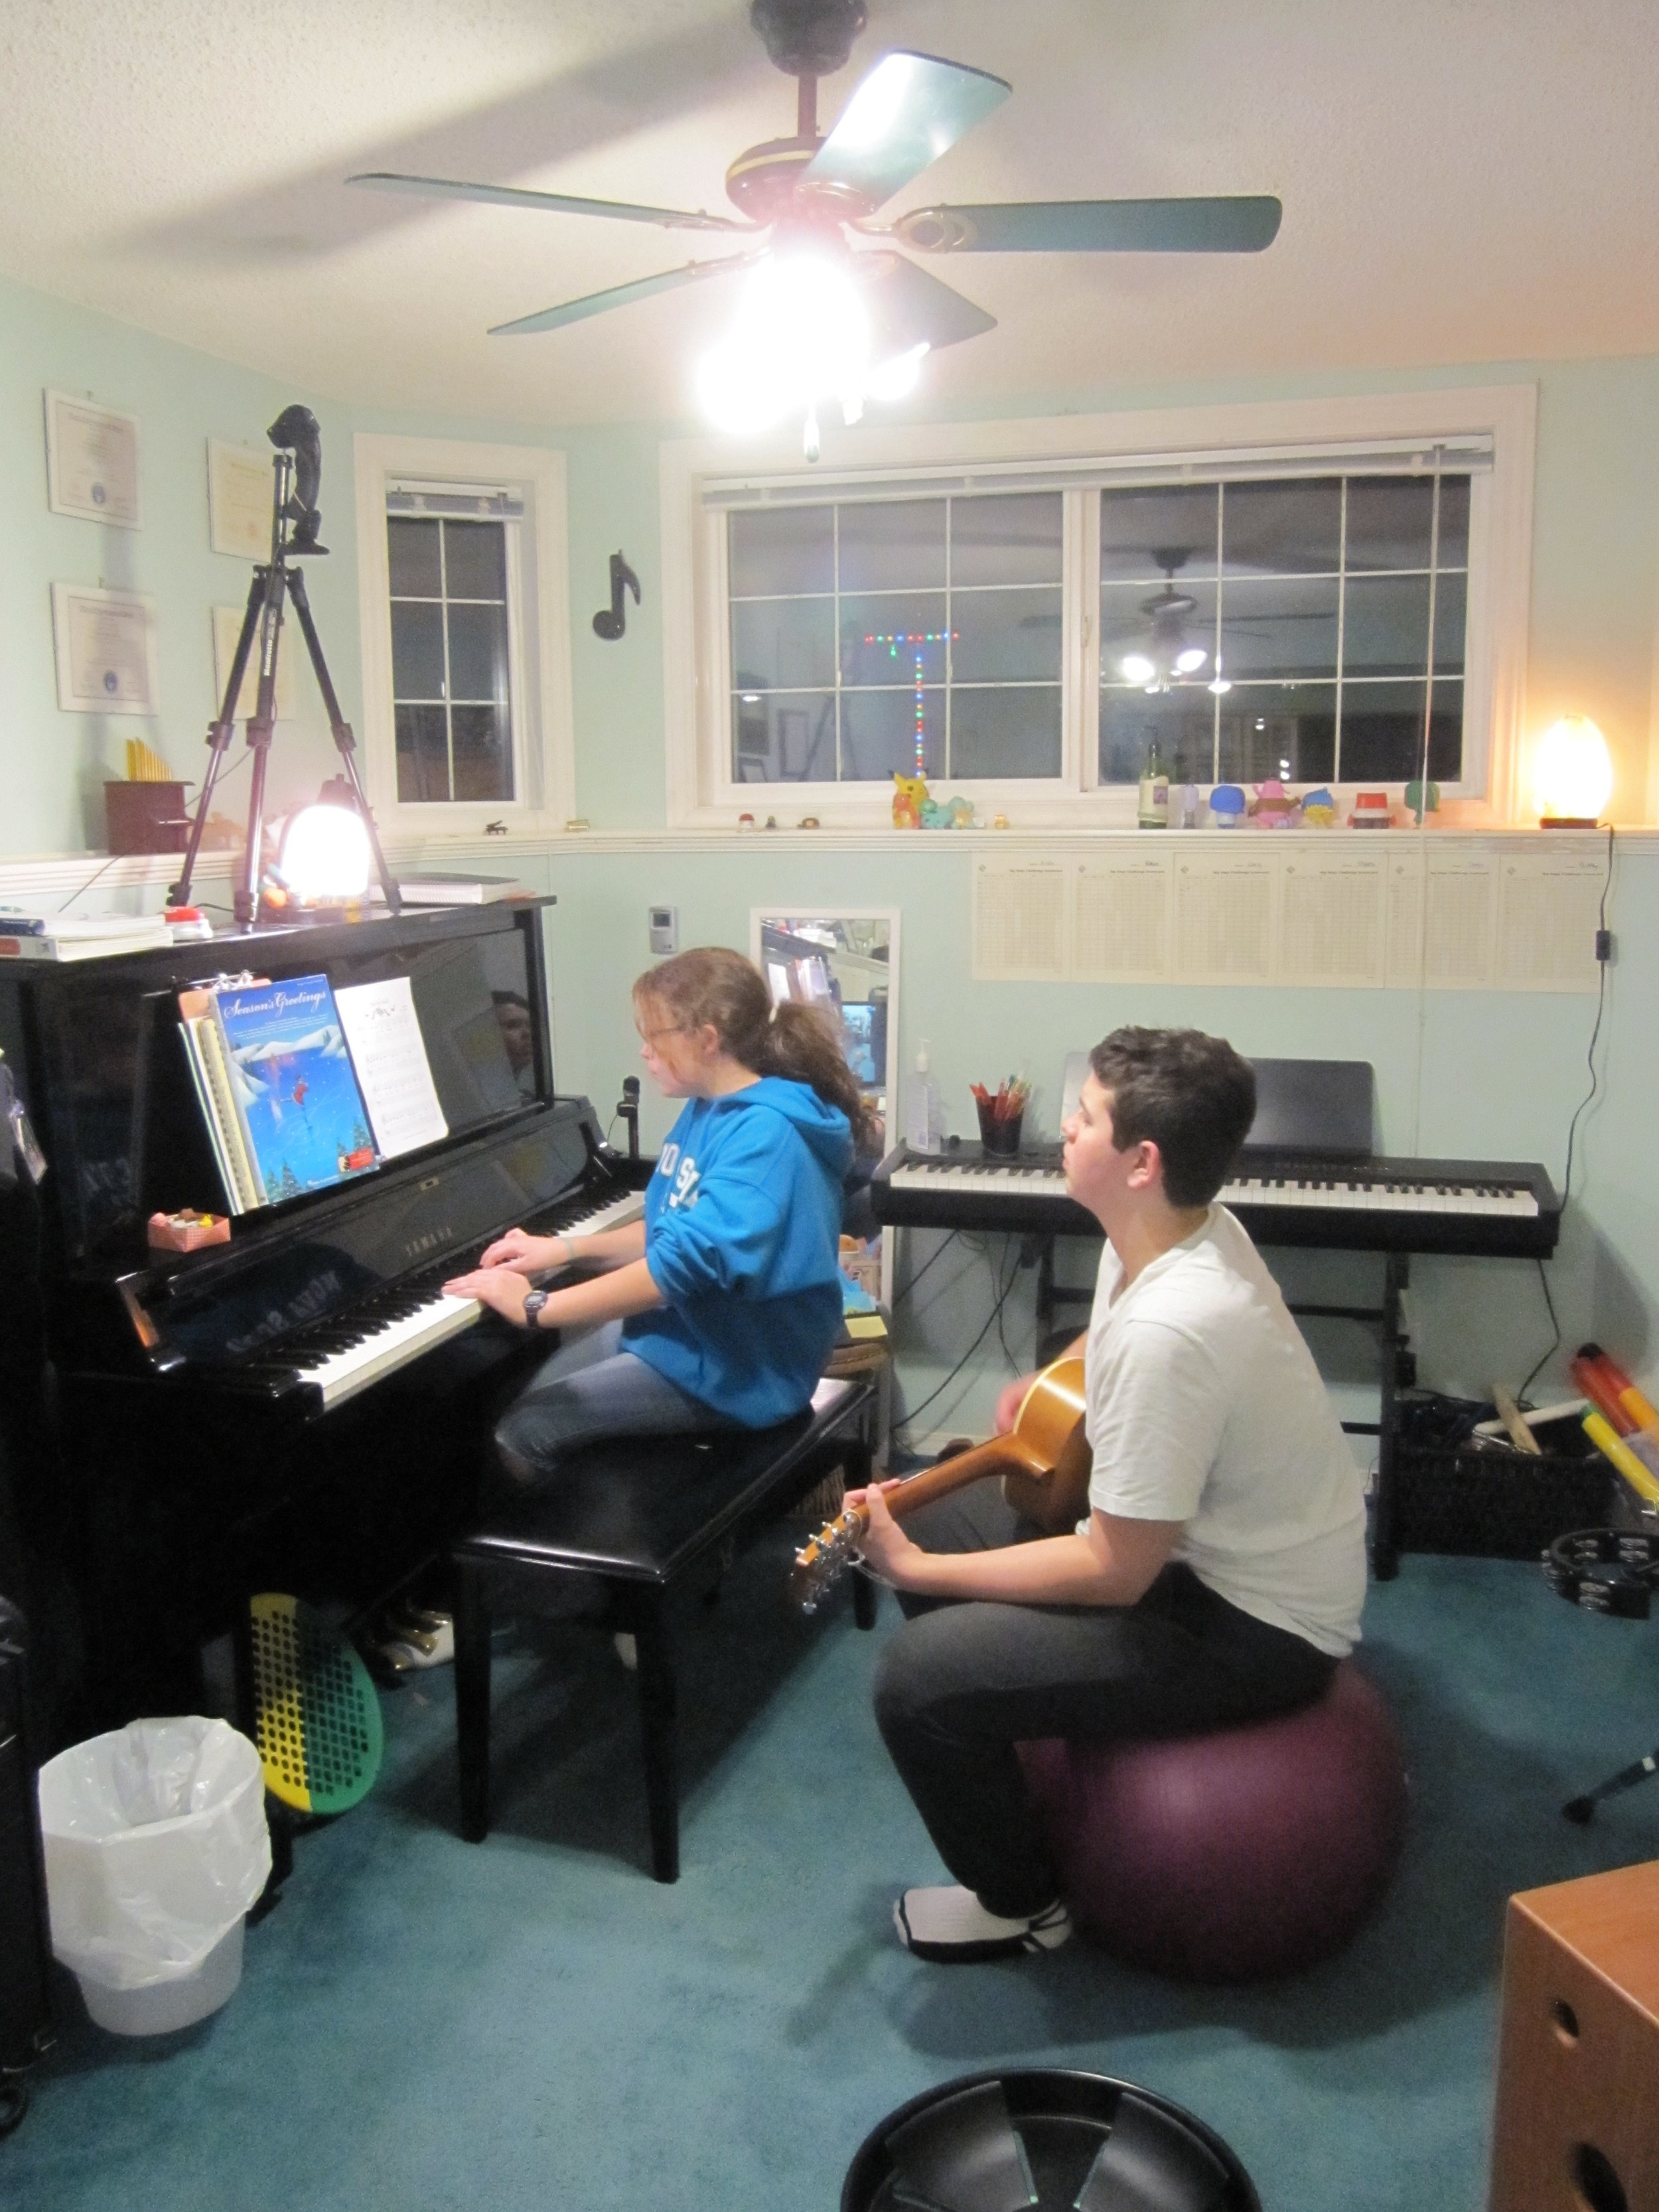 Haley and Grayson brainstorming on ways to vary their Christmas music. Photo credit: Rhona-Mae Arca.